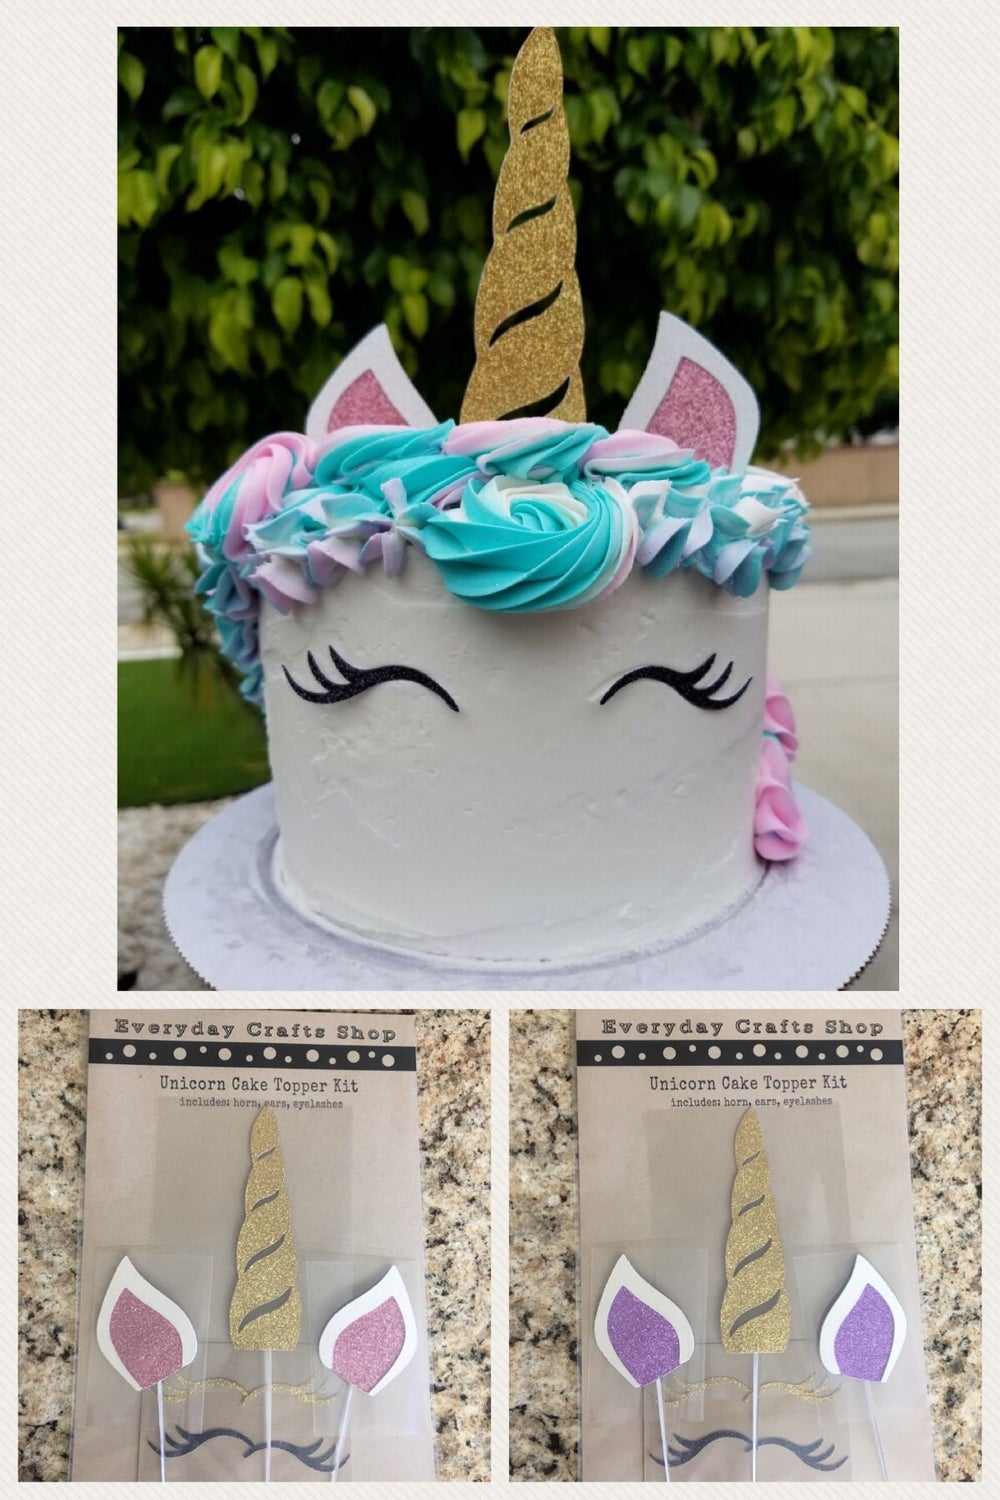 Image of Unicorn Cake Topper Kit